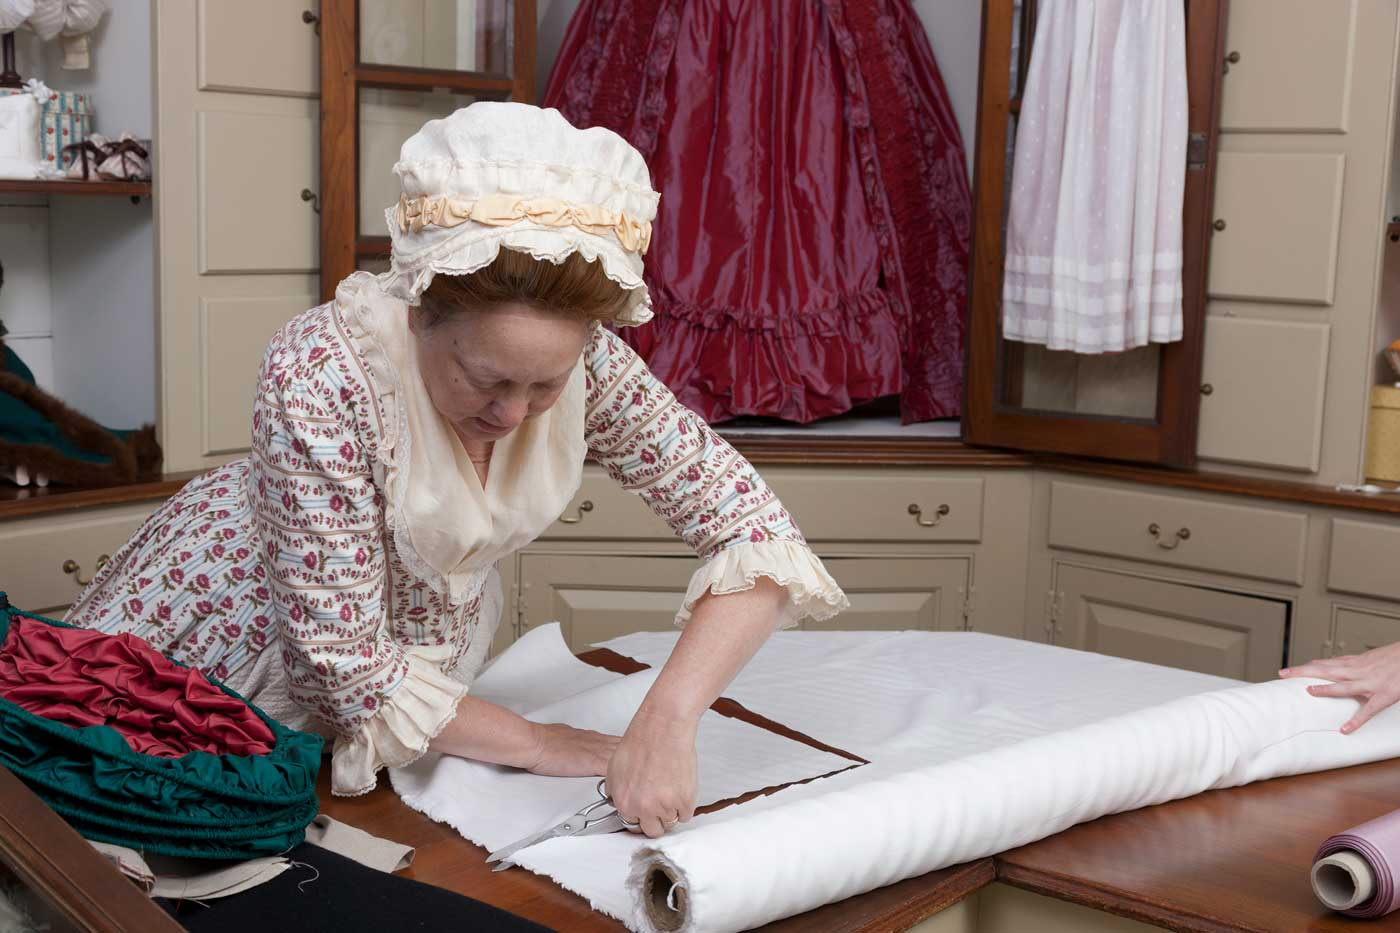 Milliner and Mantua-maker